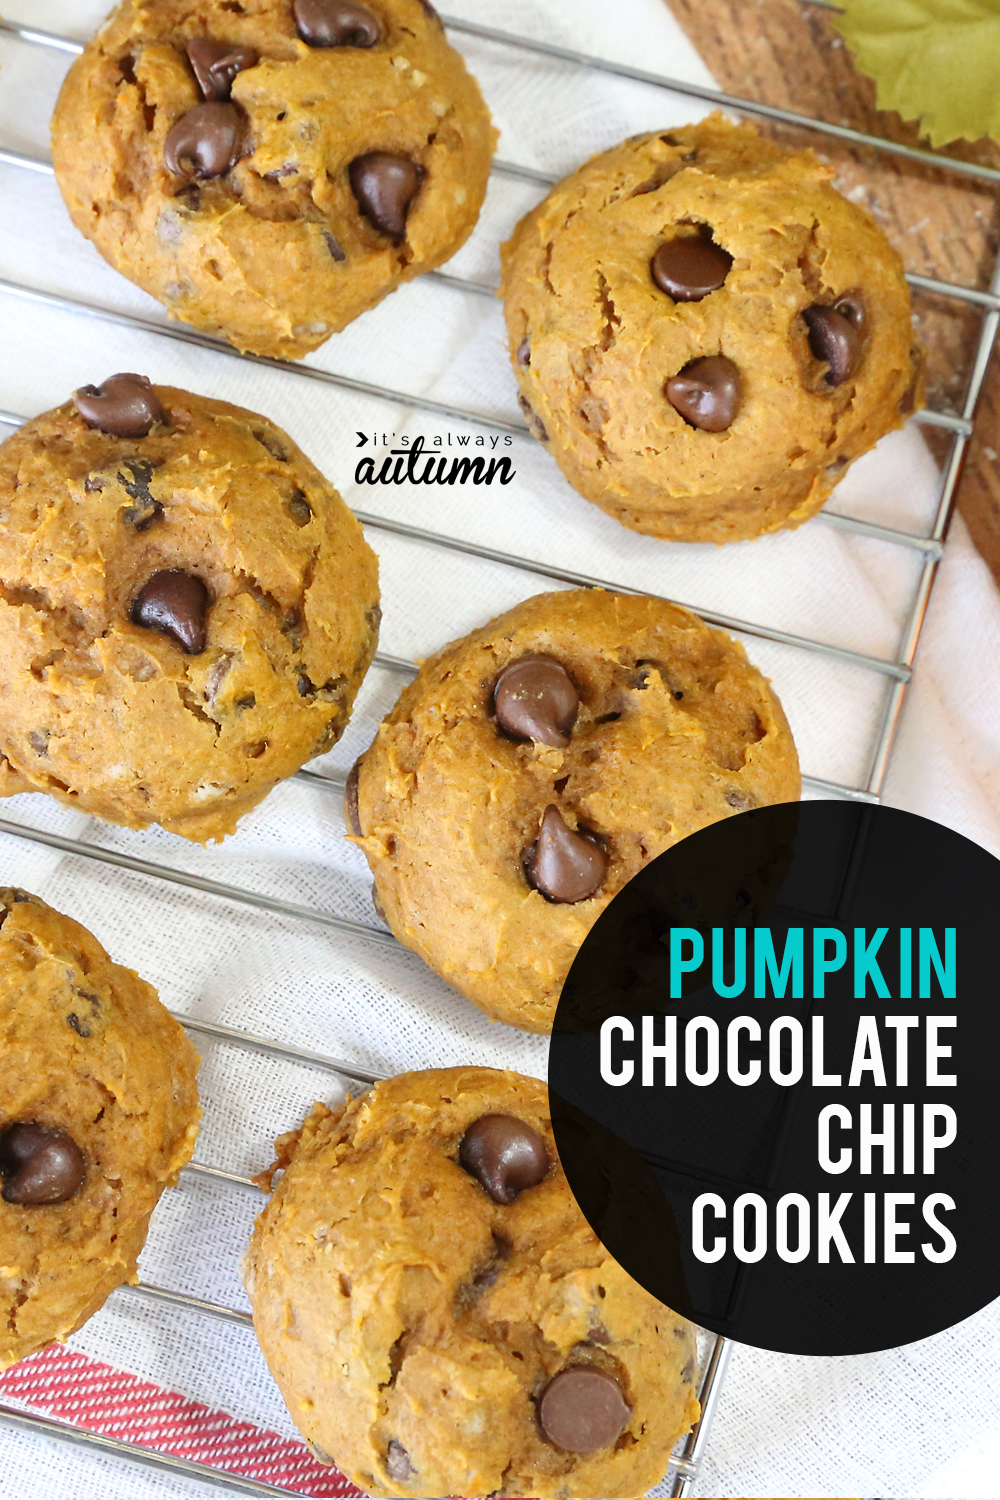 These pumpkin chocolate chip cookies are light, soft, and just plain amazing. Plus they mix up super fast with only five ingredients.